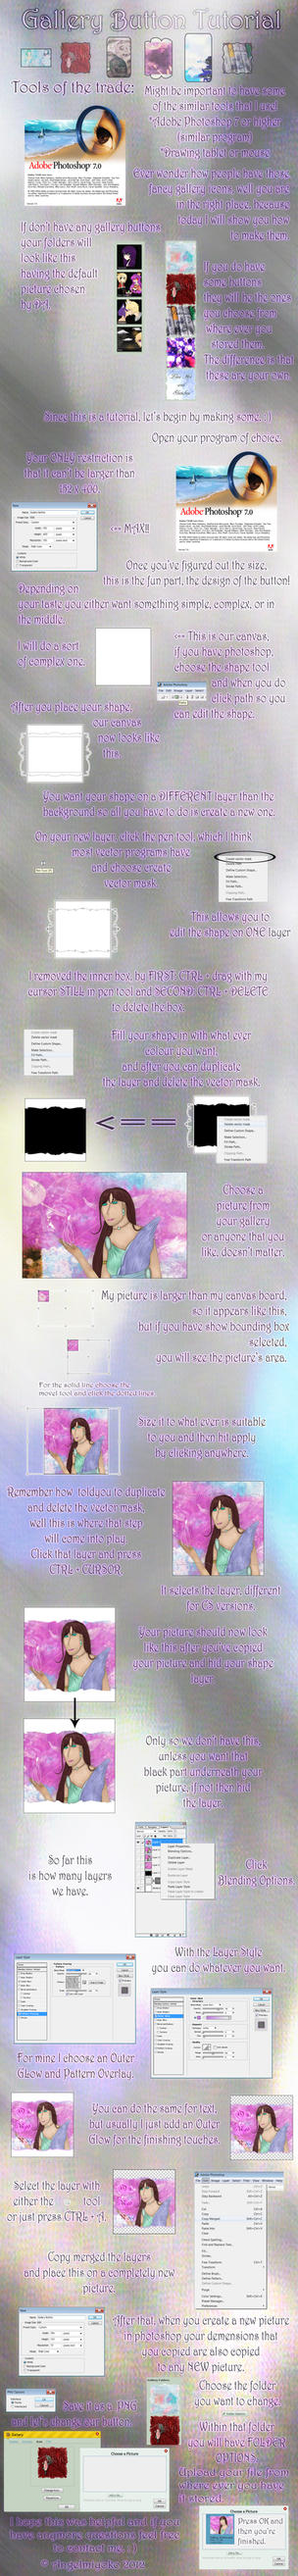 .:Gallery Button Tutorial:. by AngelMiyoko